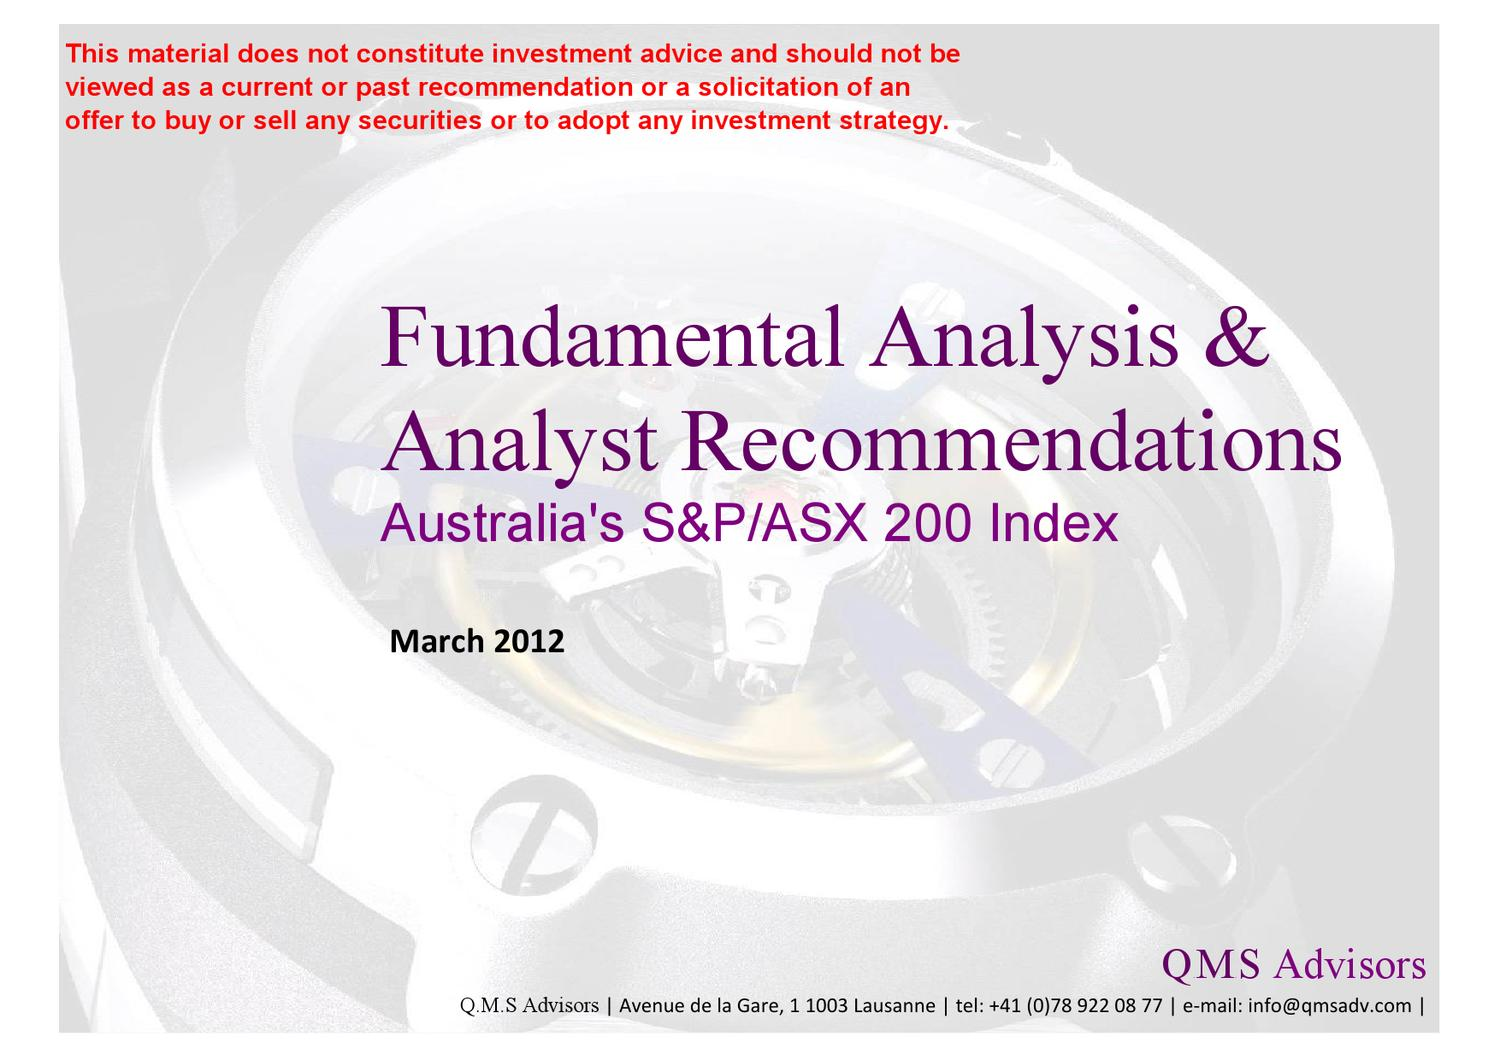 fundamental equity analysis analyst recommendations australia s